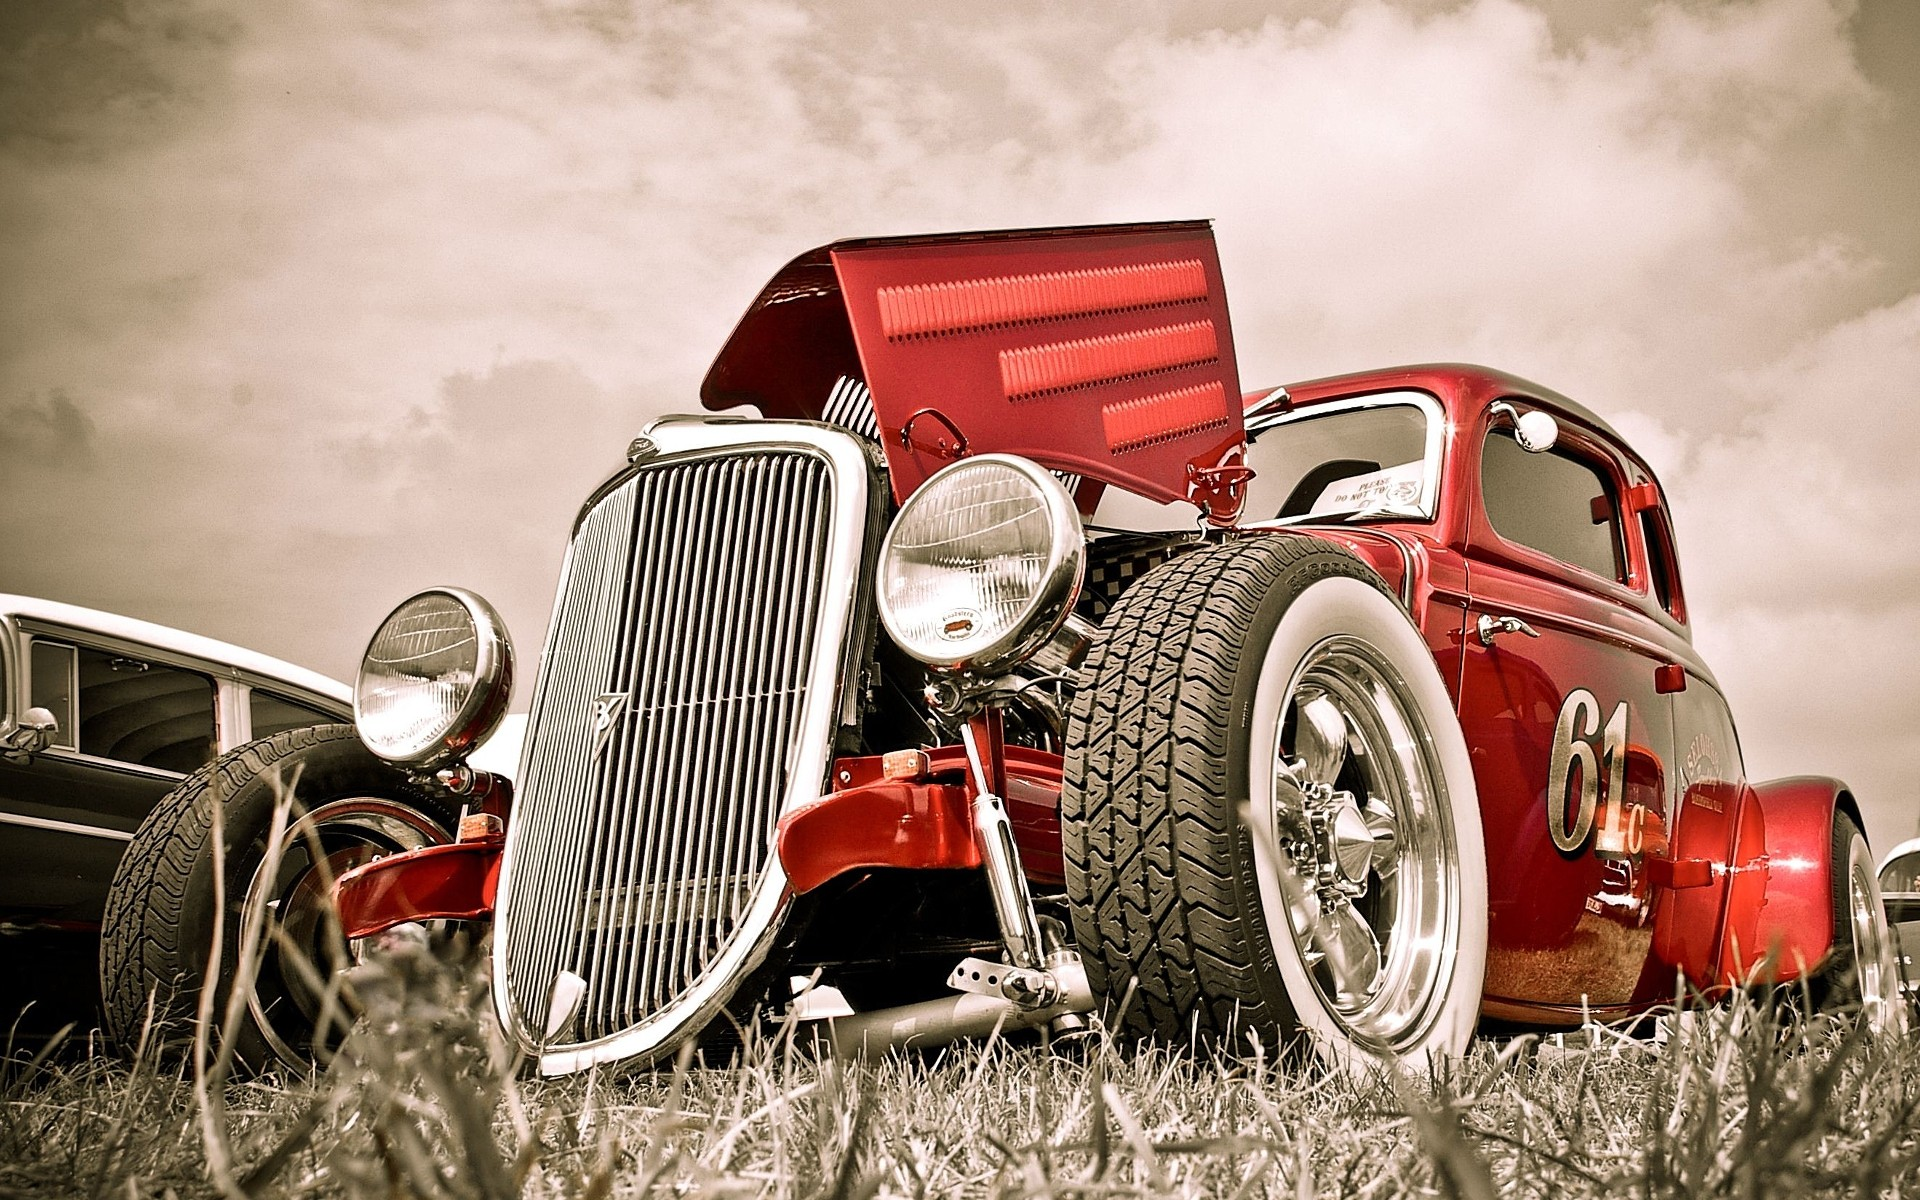 Cars Car Transportation System Drive Classic Vehicle Vintage Retro Chrome  Wheel Engine Nostalgia Hot Rod